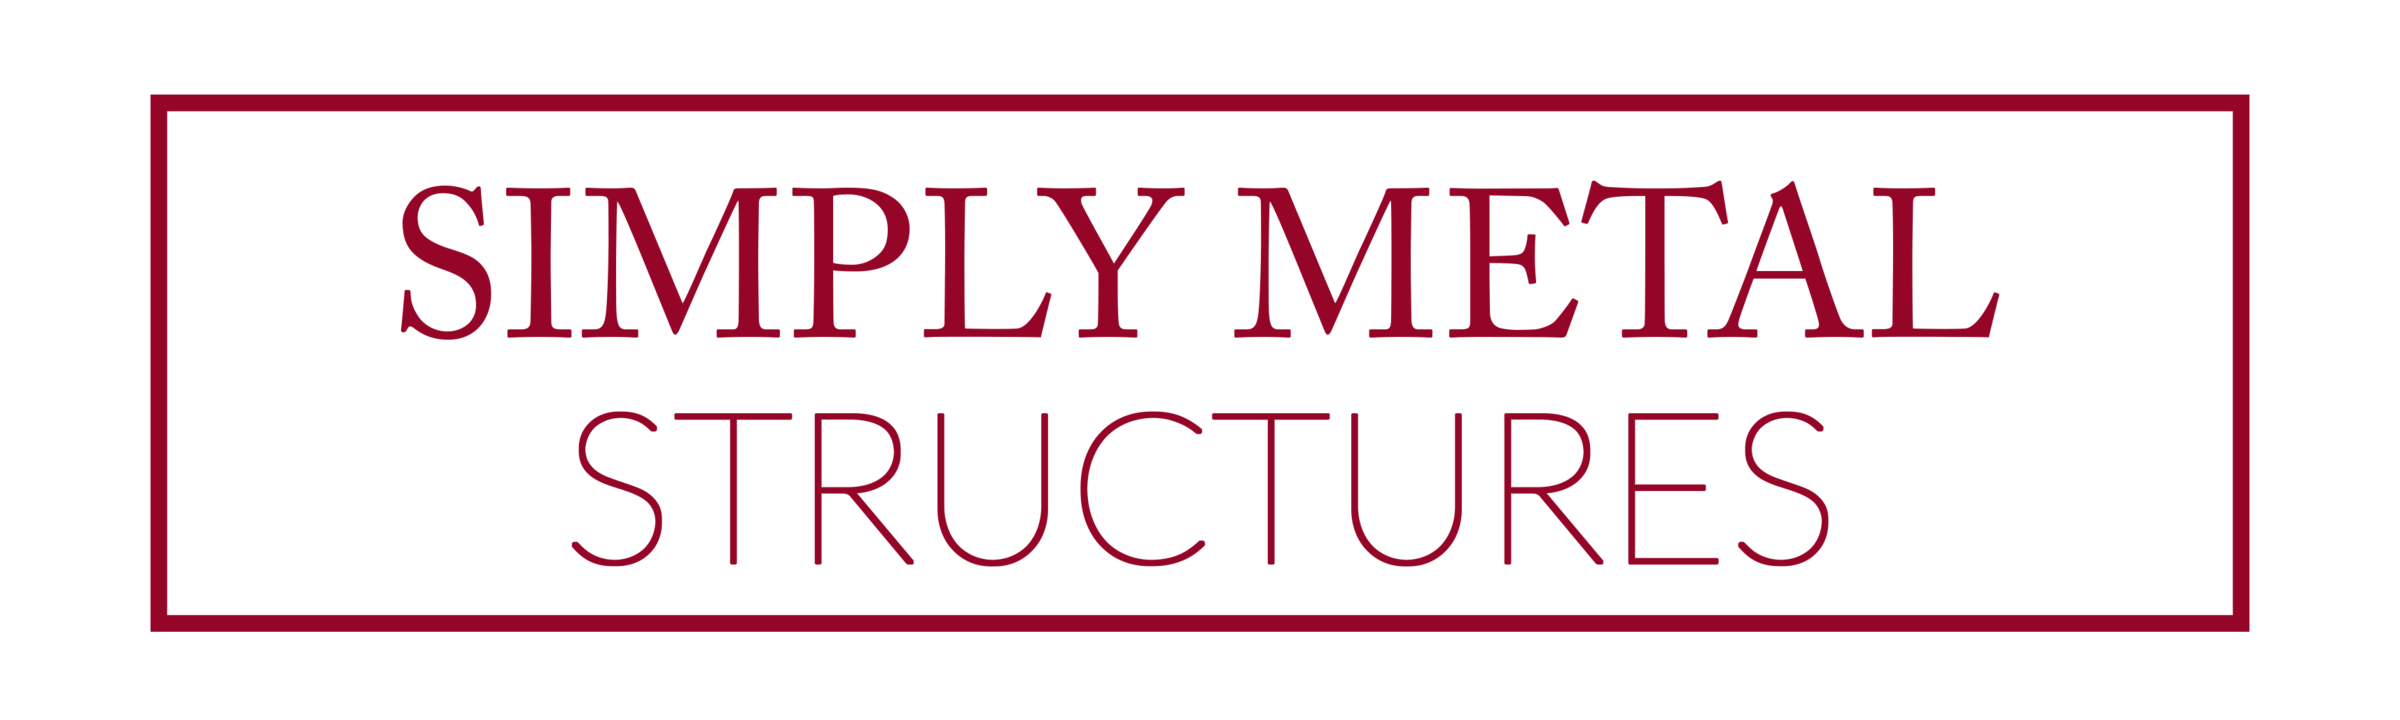 Simply Metal Structures, LLC